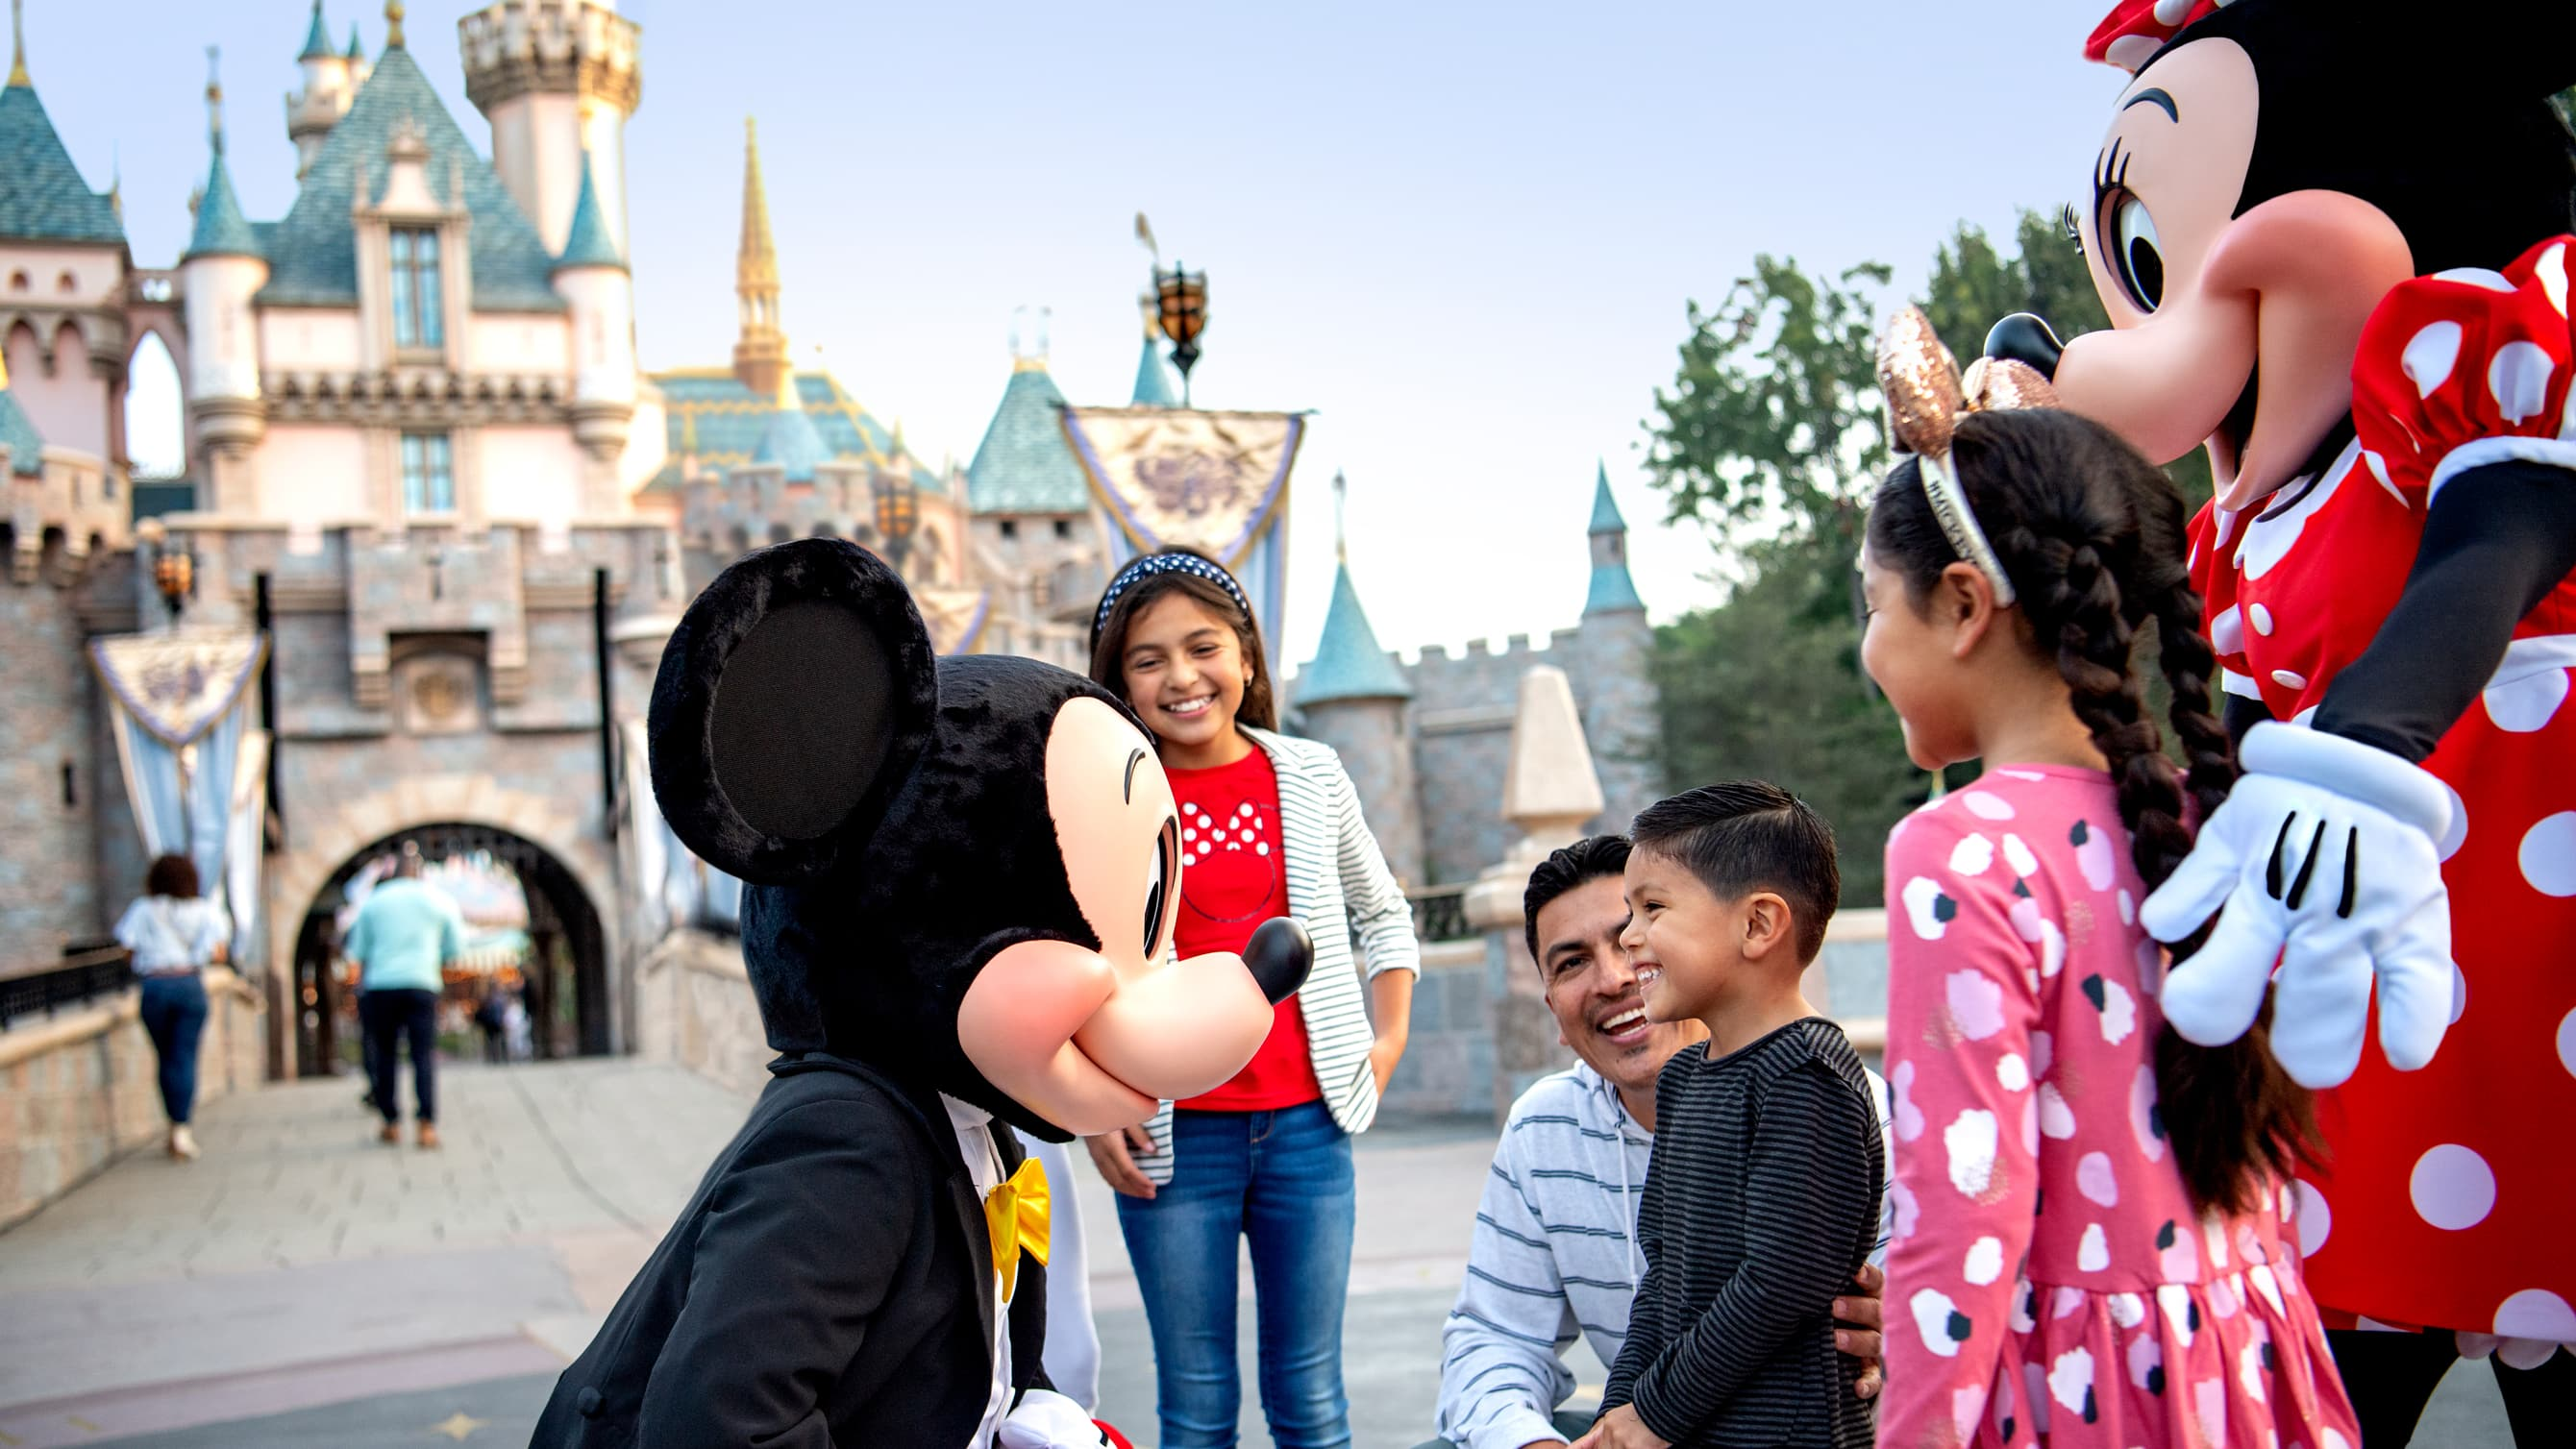 Mickey and Minnie Mouse greet a boy standing with his 2 sisters and his father